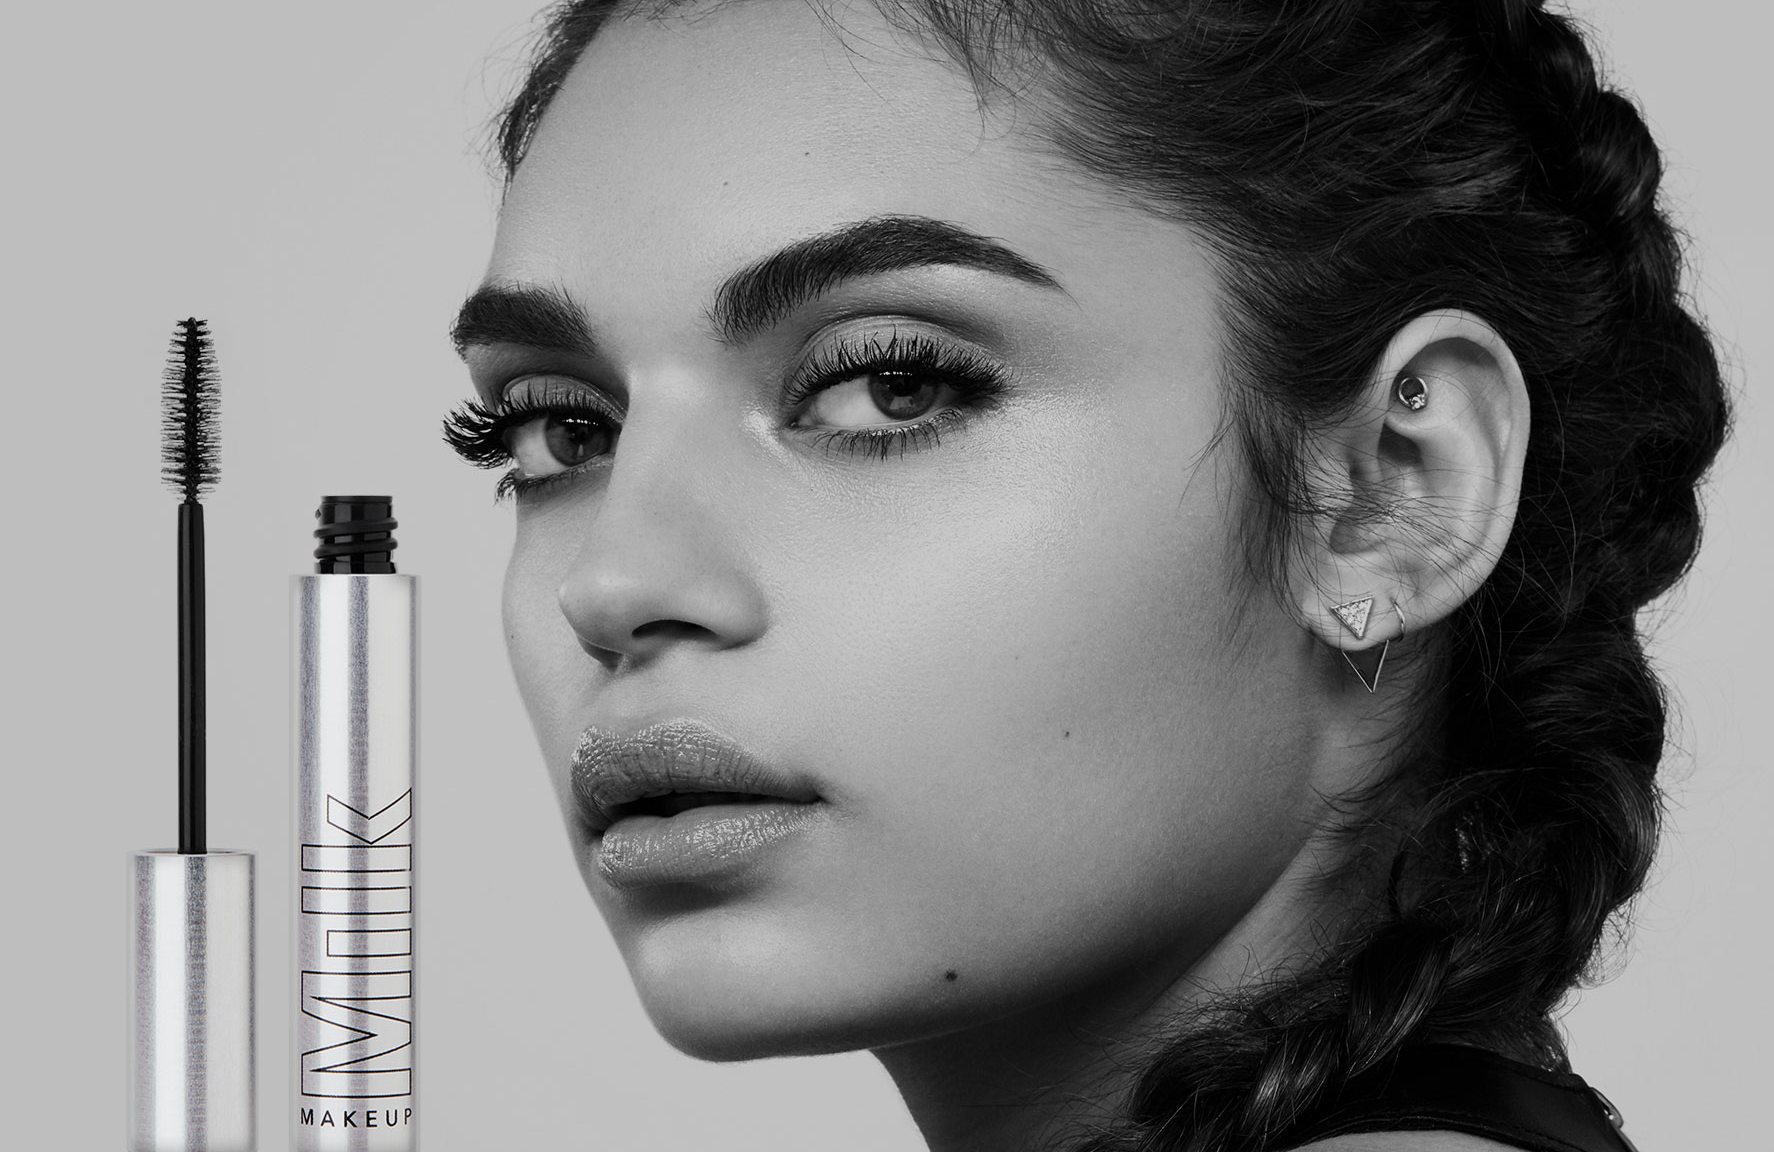 An advertisement for Milk Makeup's Kush Mascara featuring a model and a close-up shot of the product.